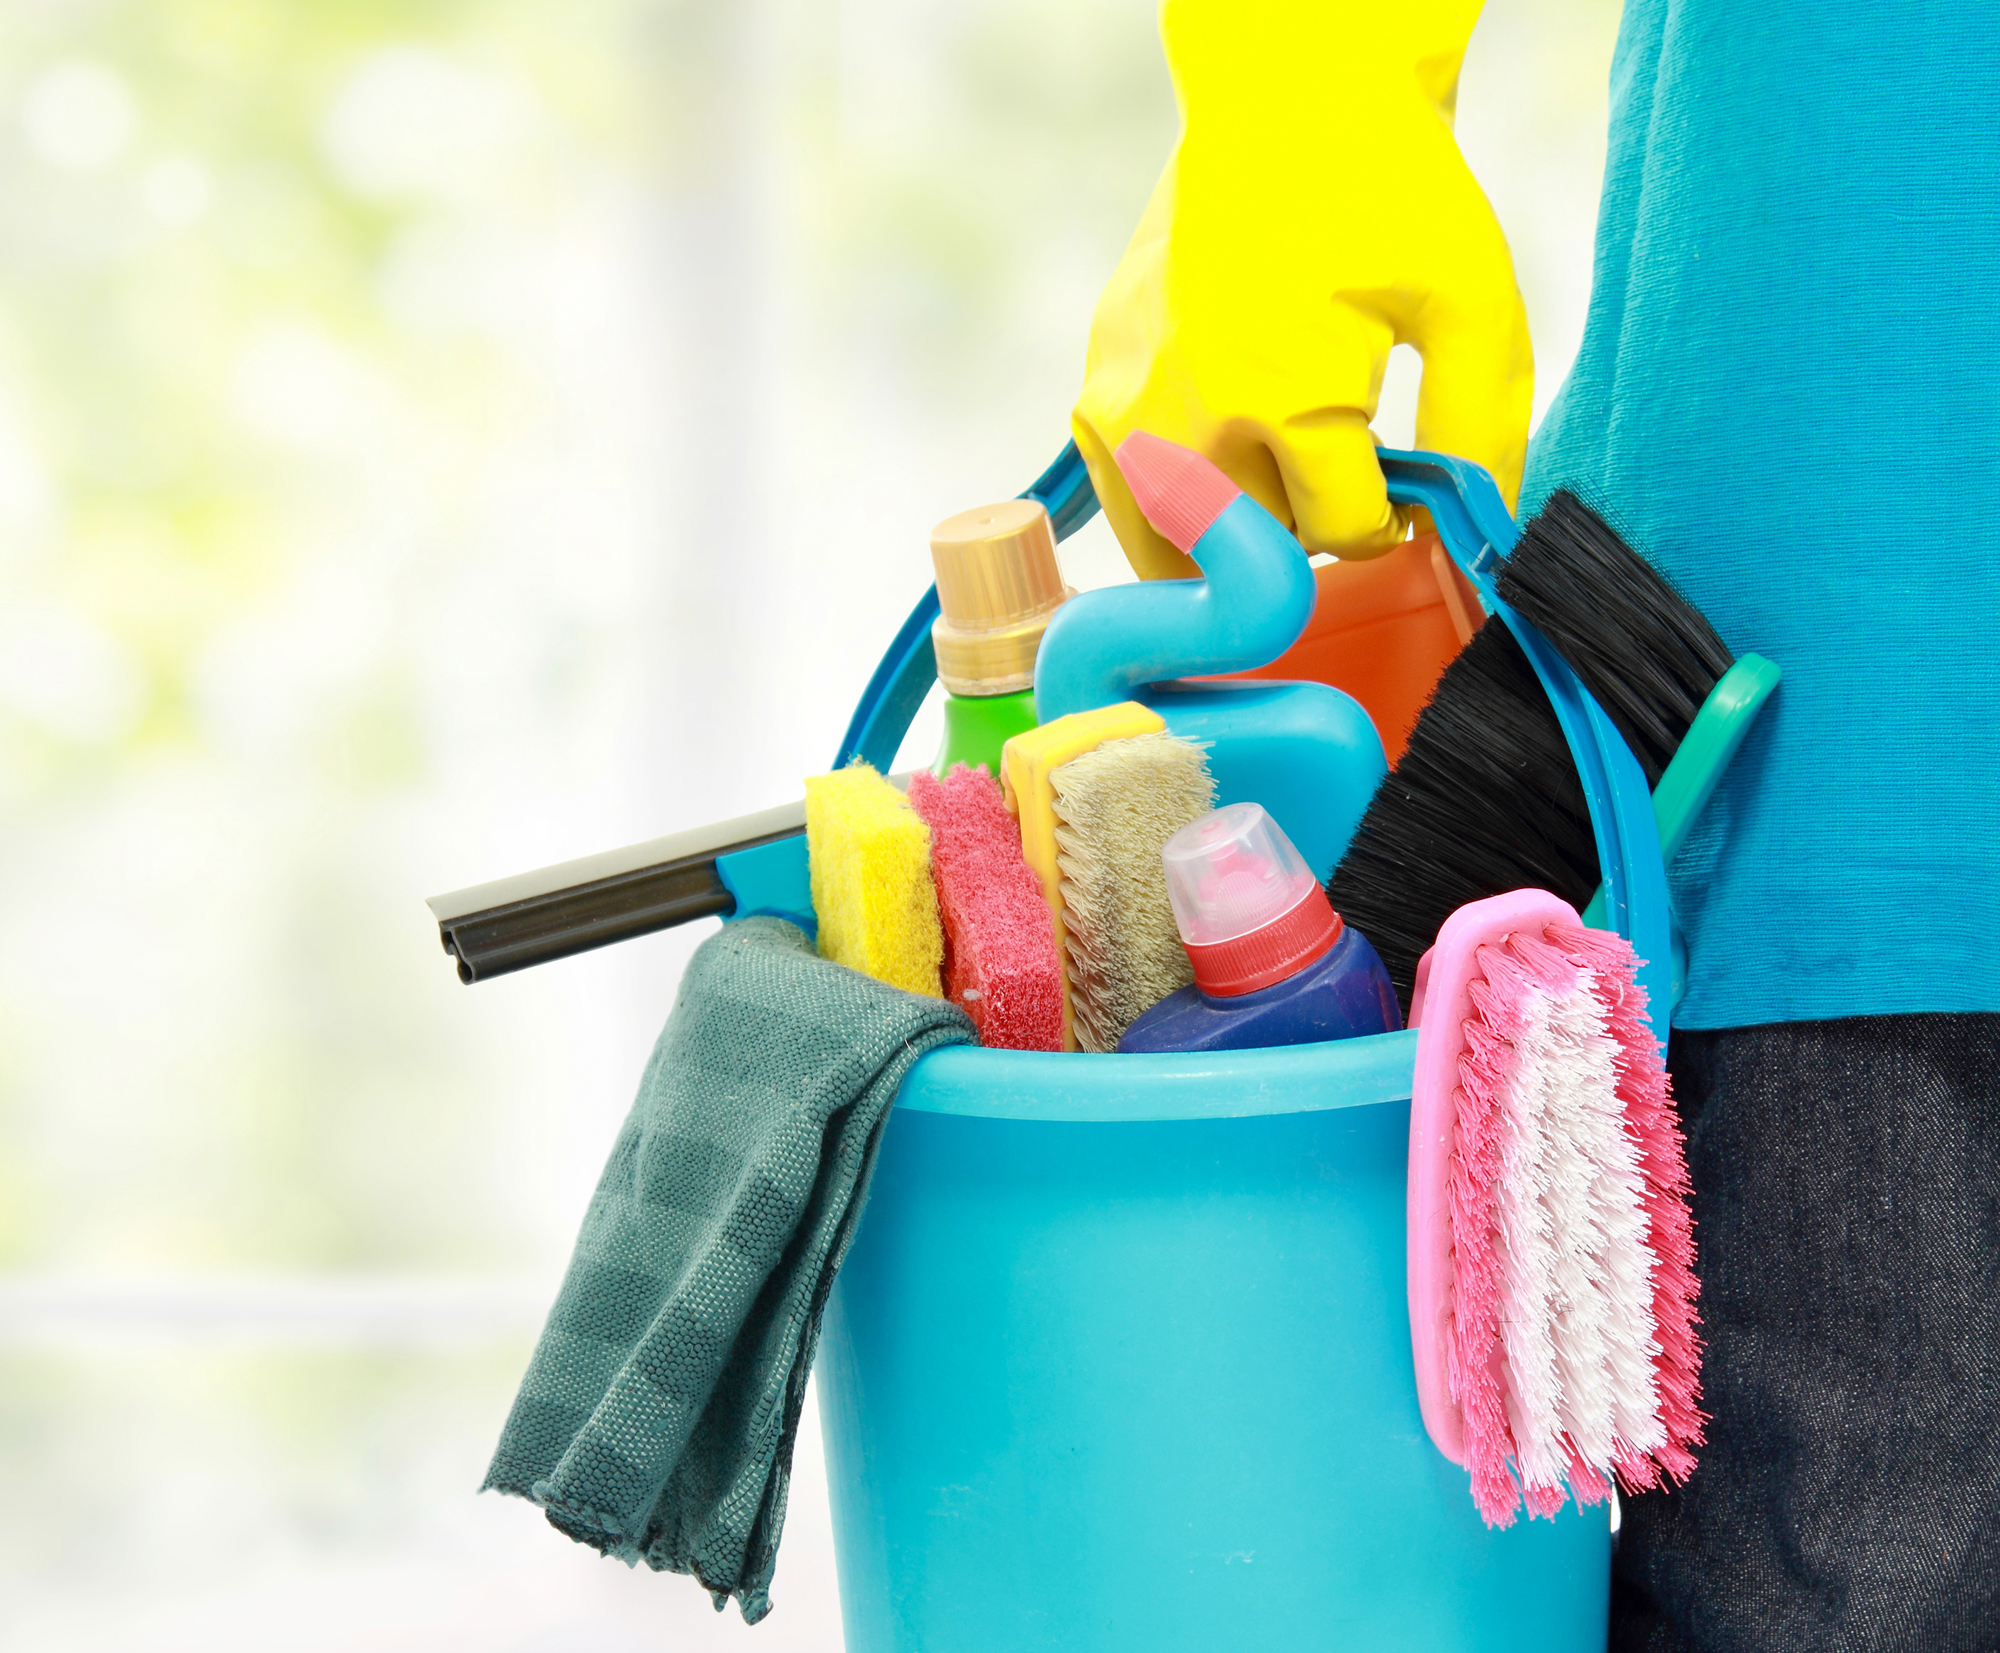 Where can I find a Cleaning Equipment Suppliers in Florida